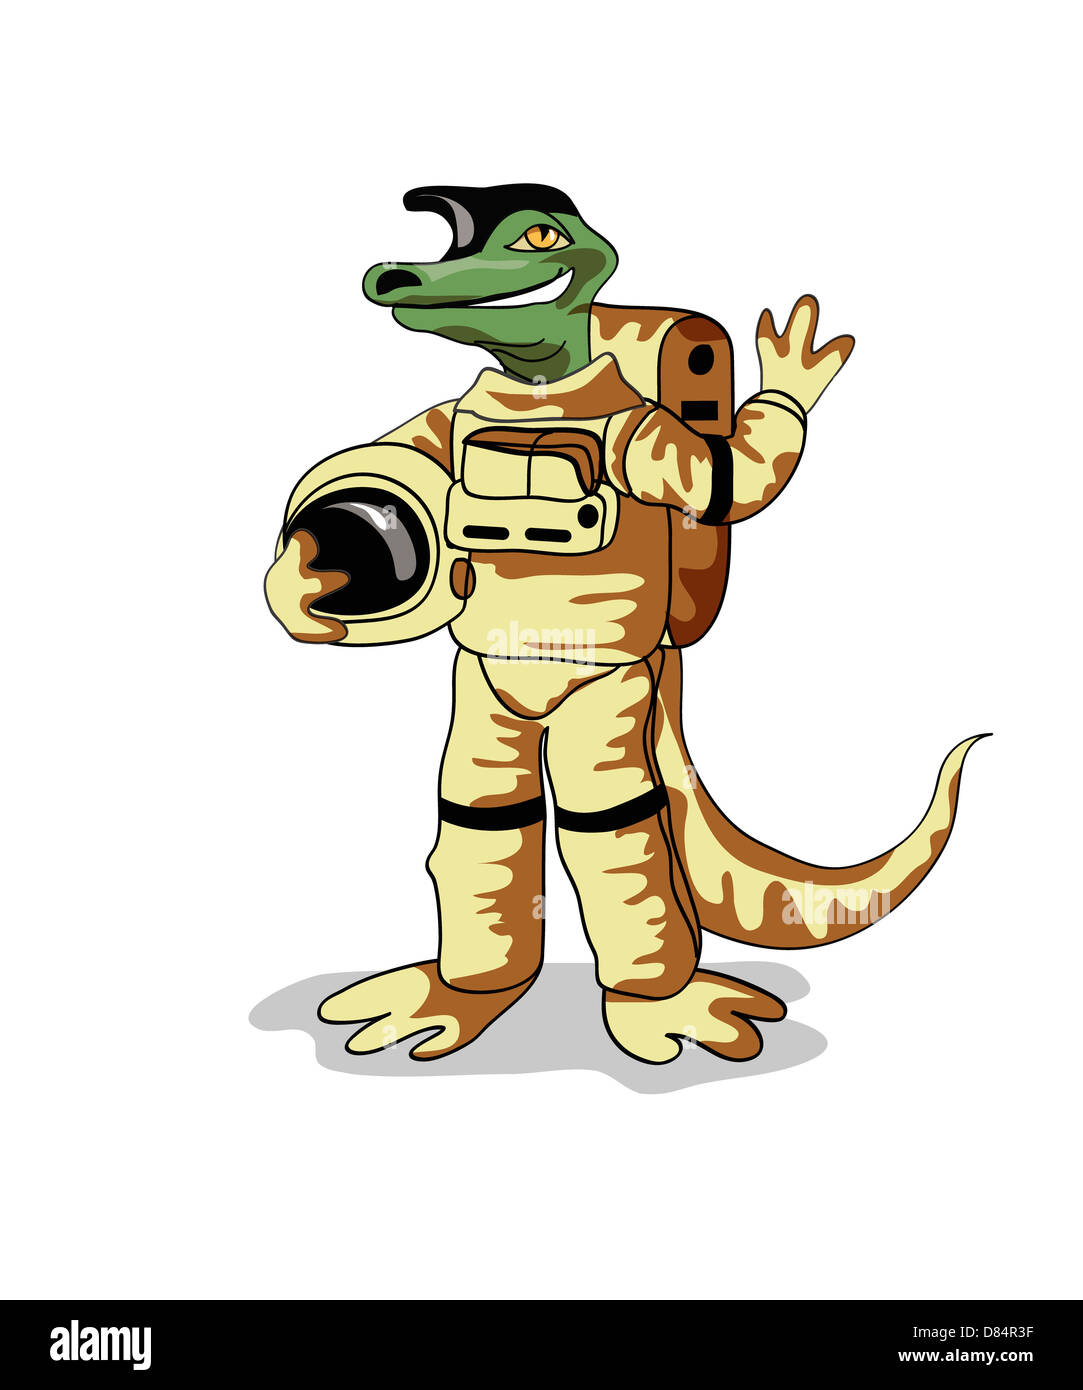 Illustration of an Iguanodon dinosaur dressed in a cosmonaut spacesuit. - Stock Image